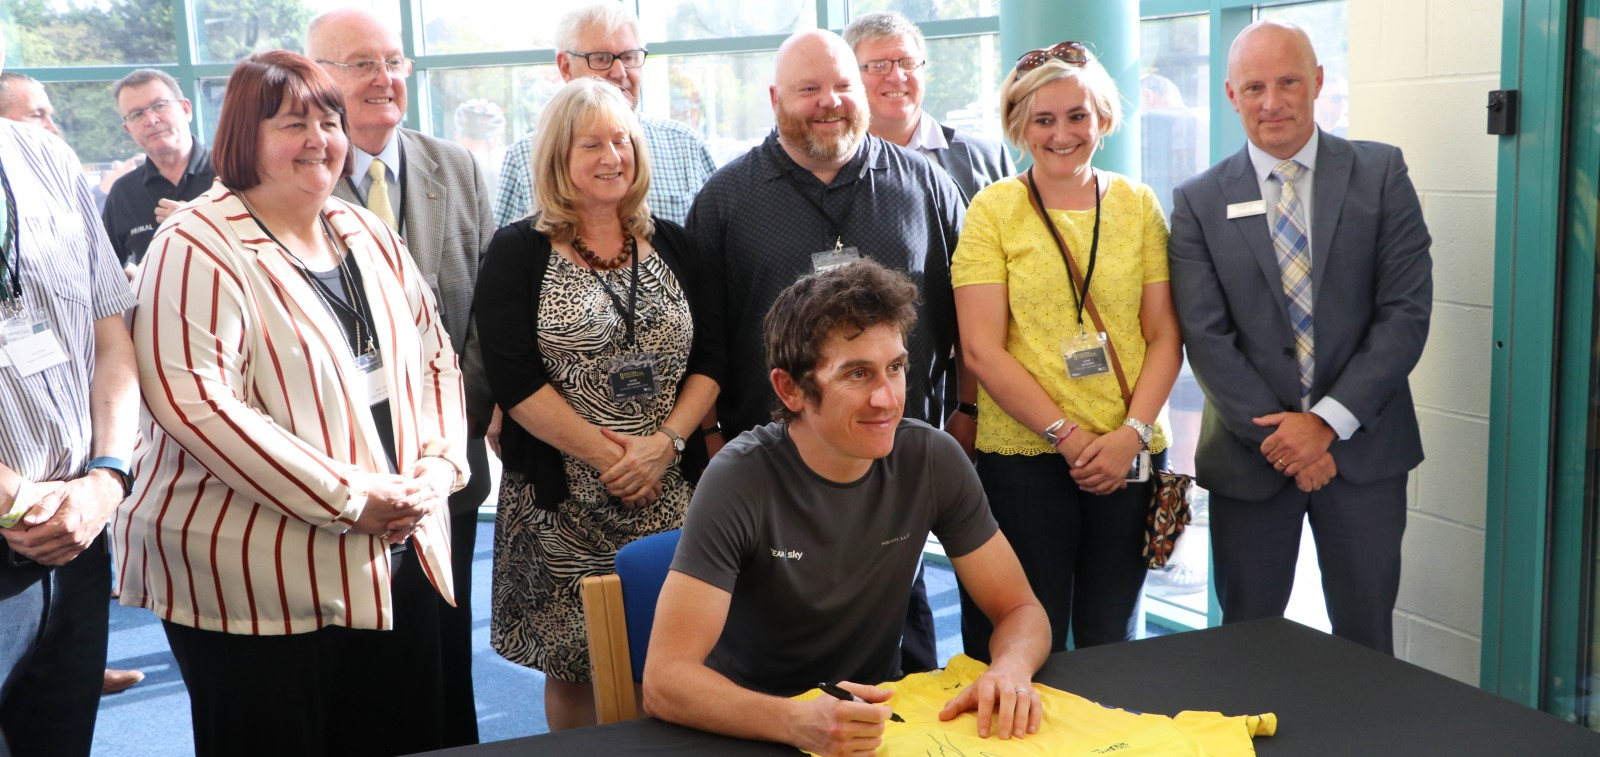 Cyclist Geraint Thomas sat a table with a line of people behind him